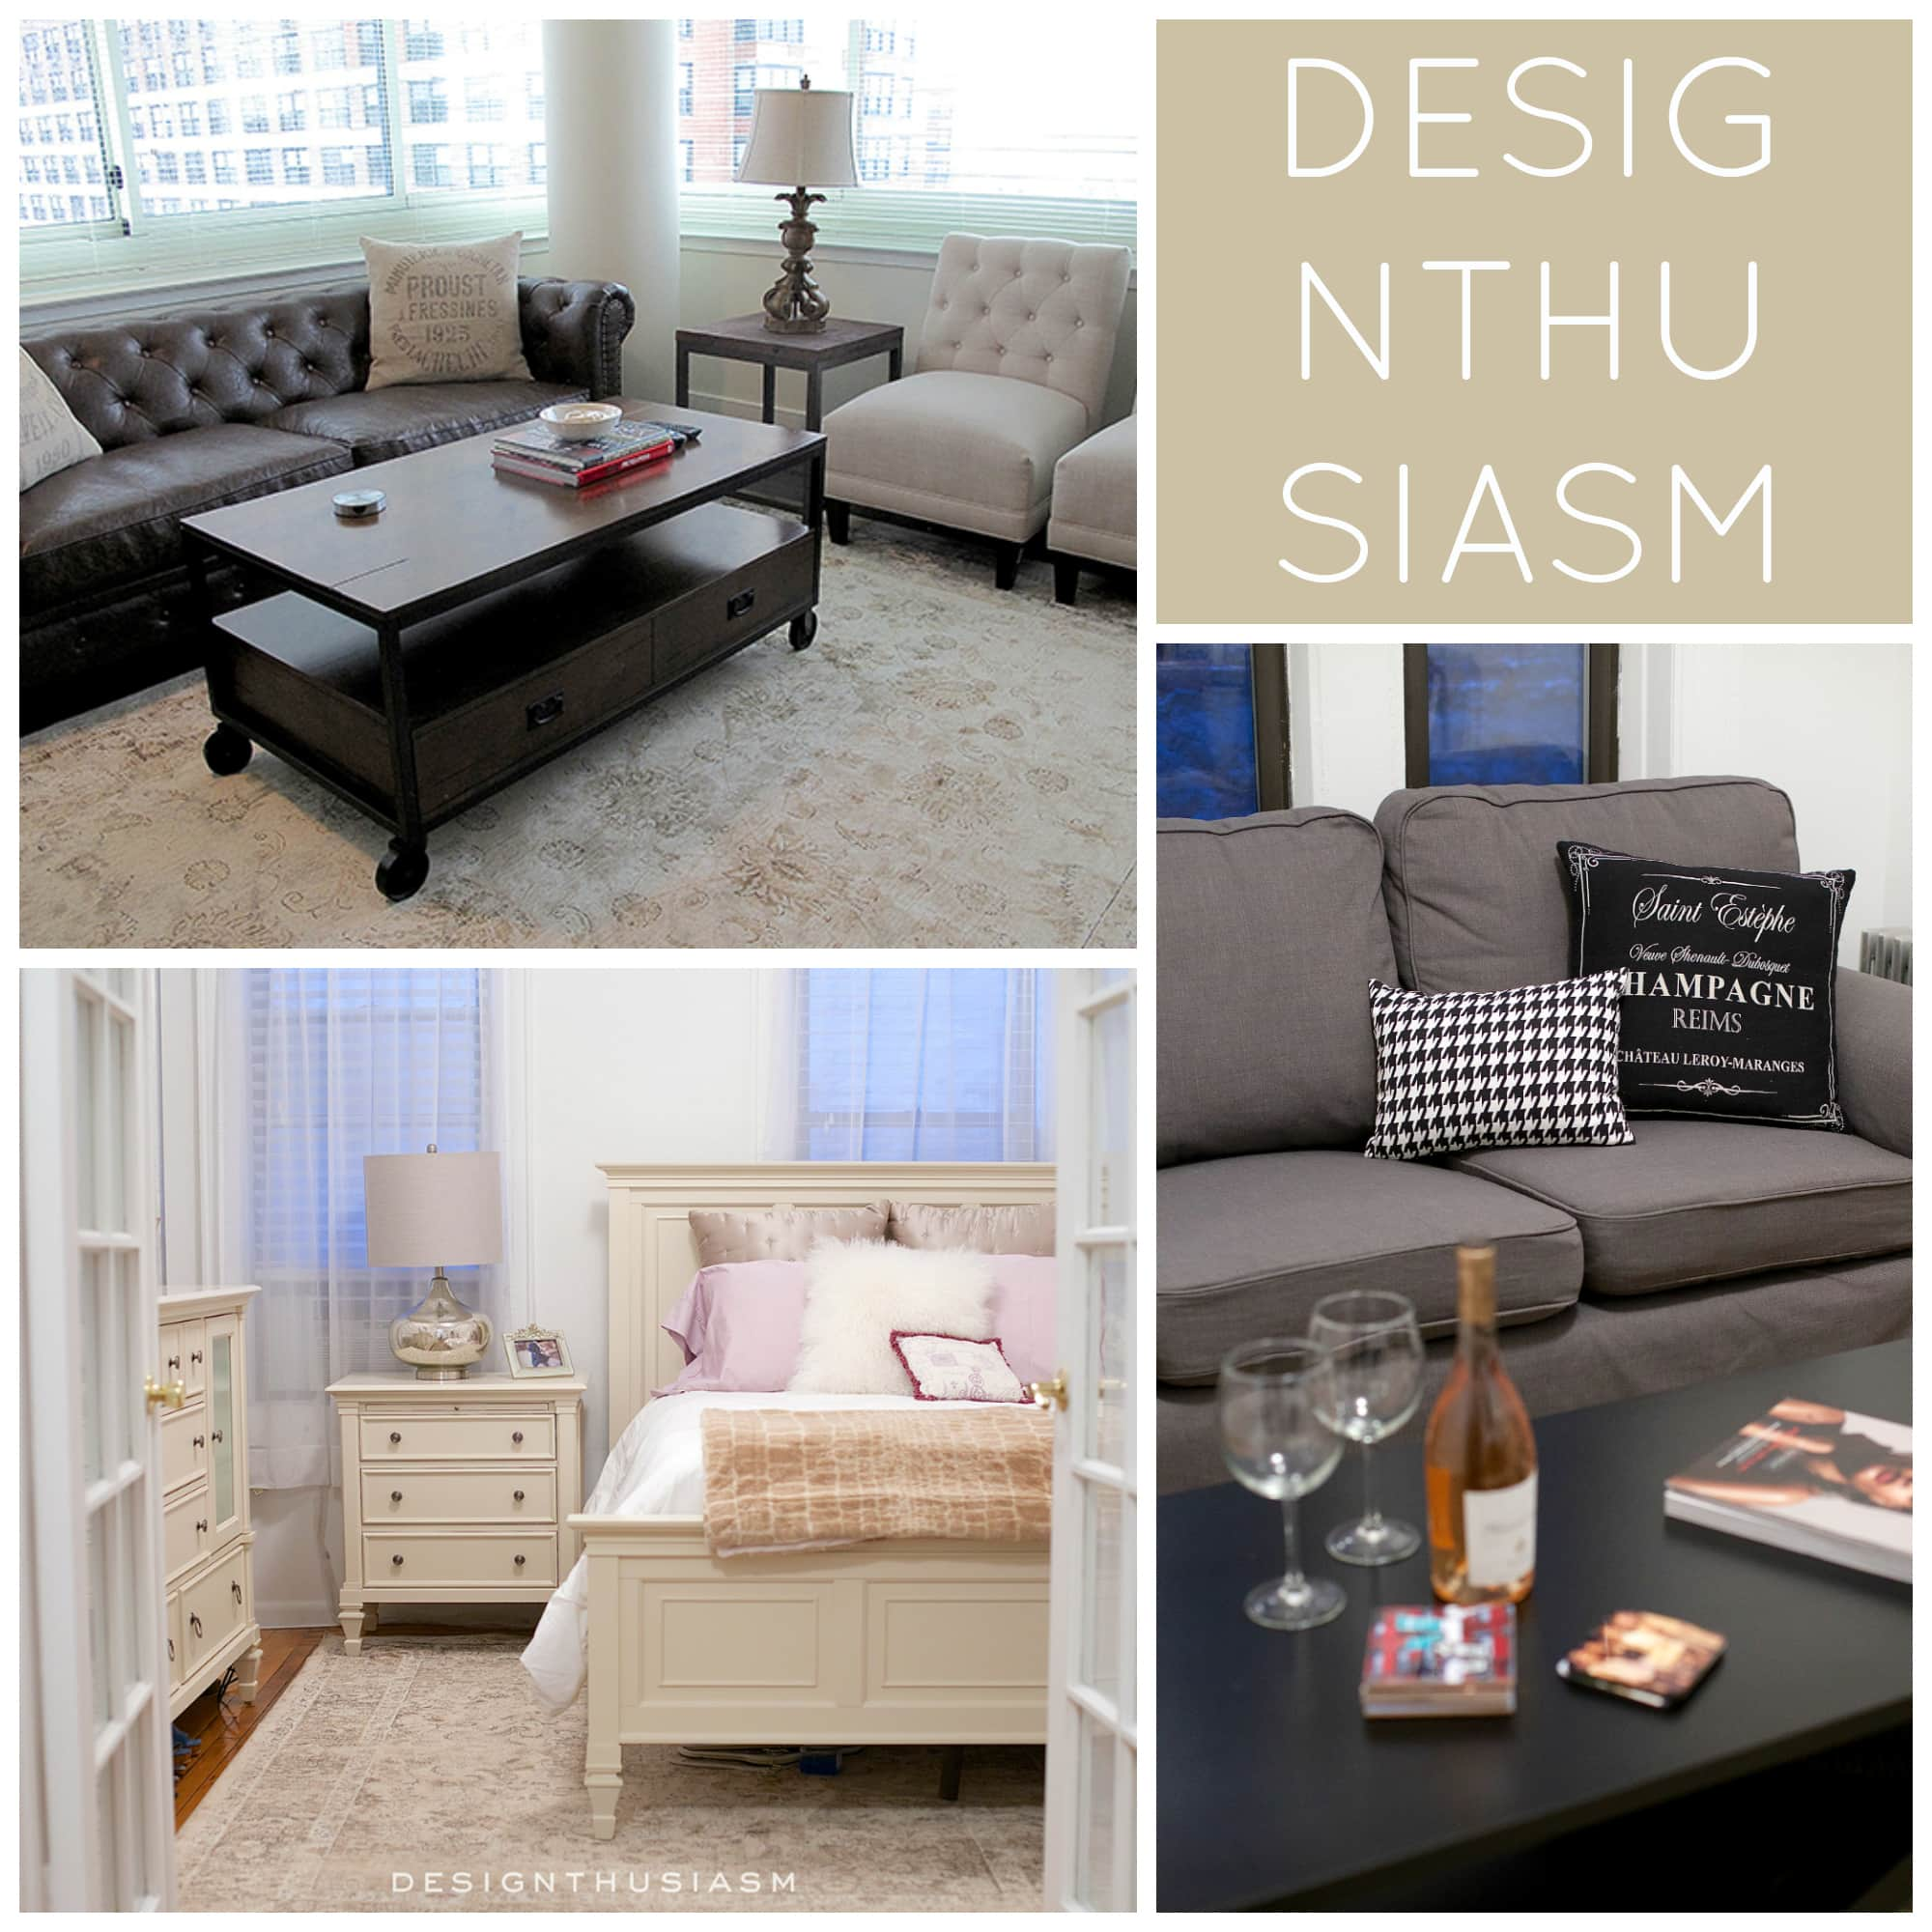 Share It One More Time Inspiration Party | The Everyday Home